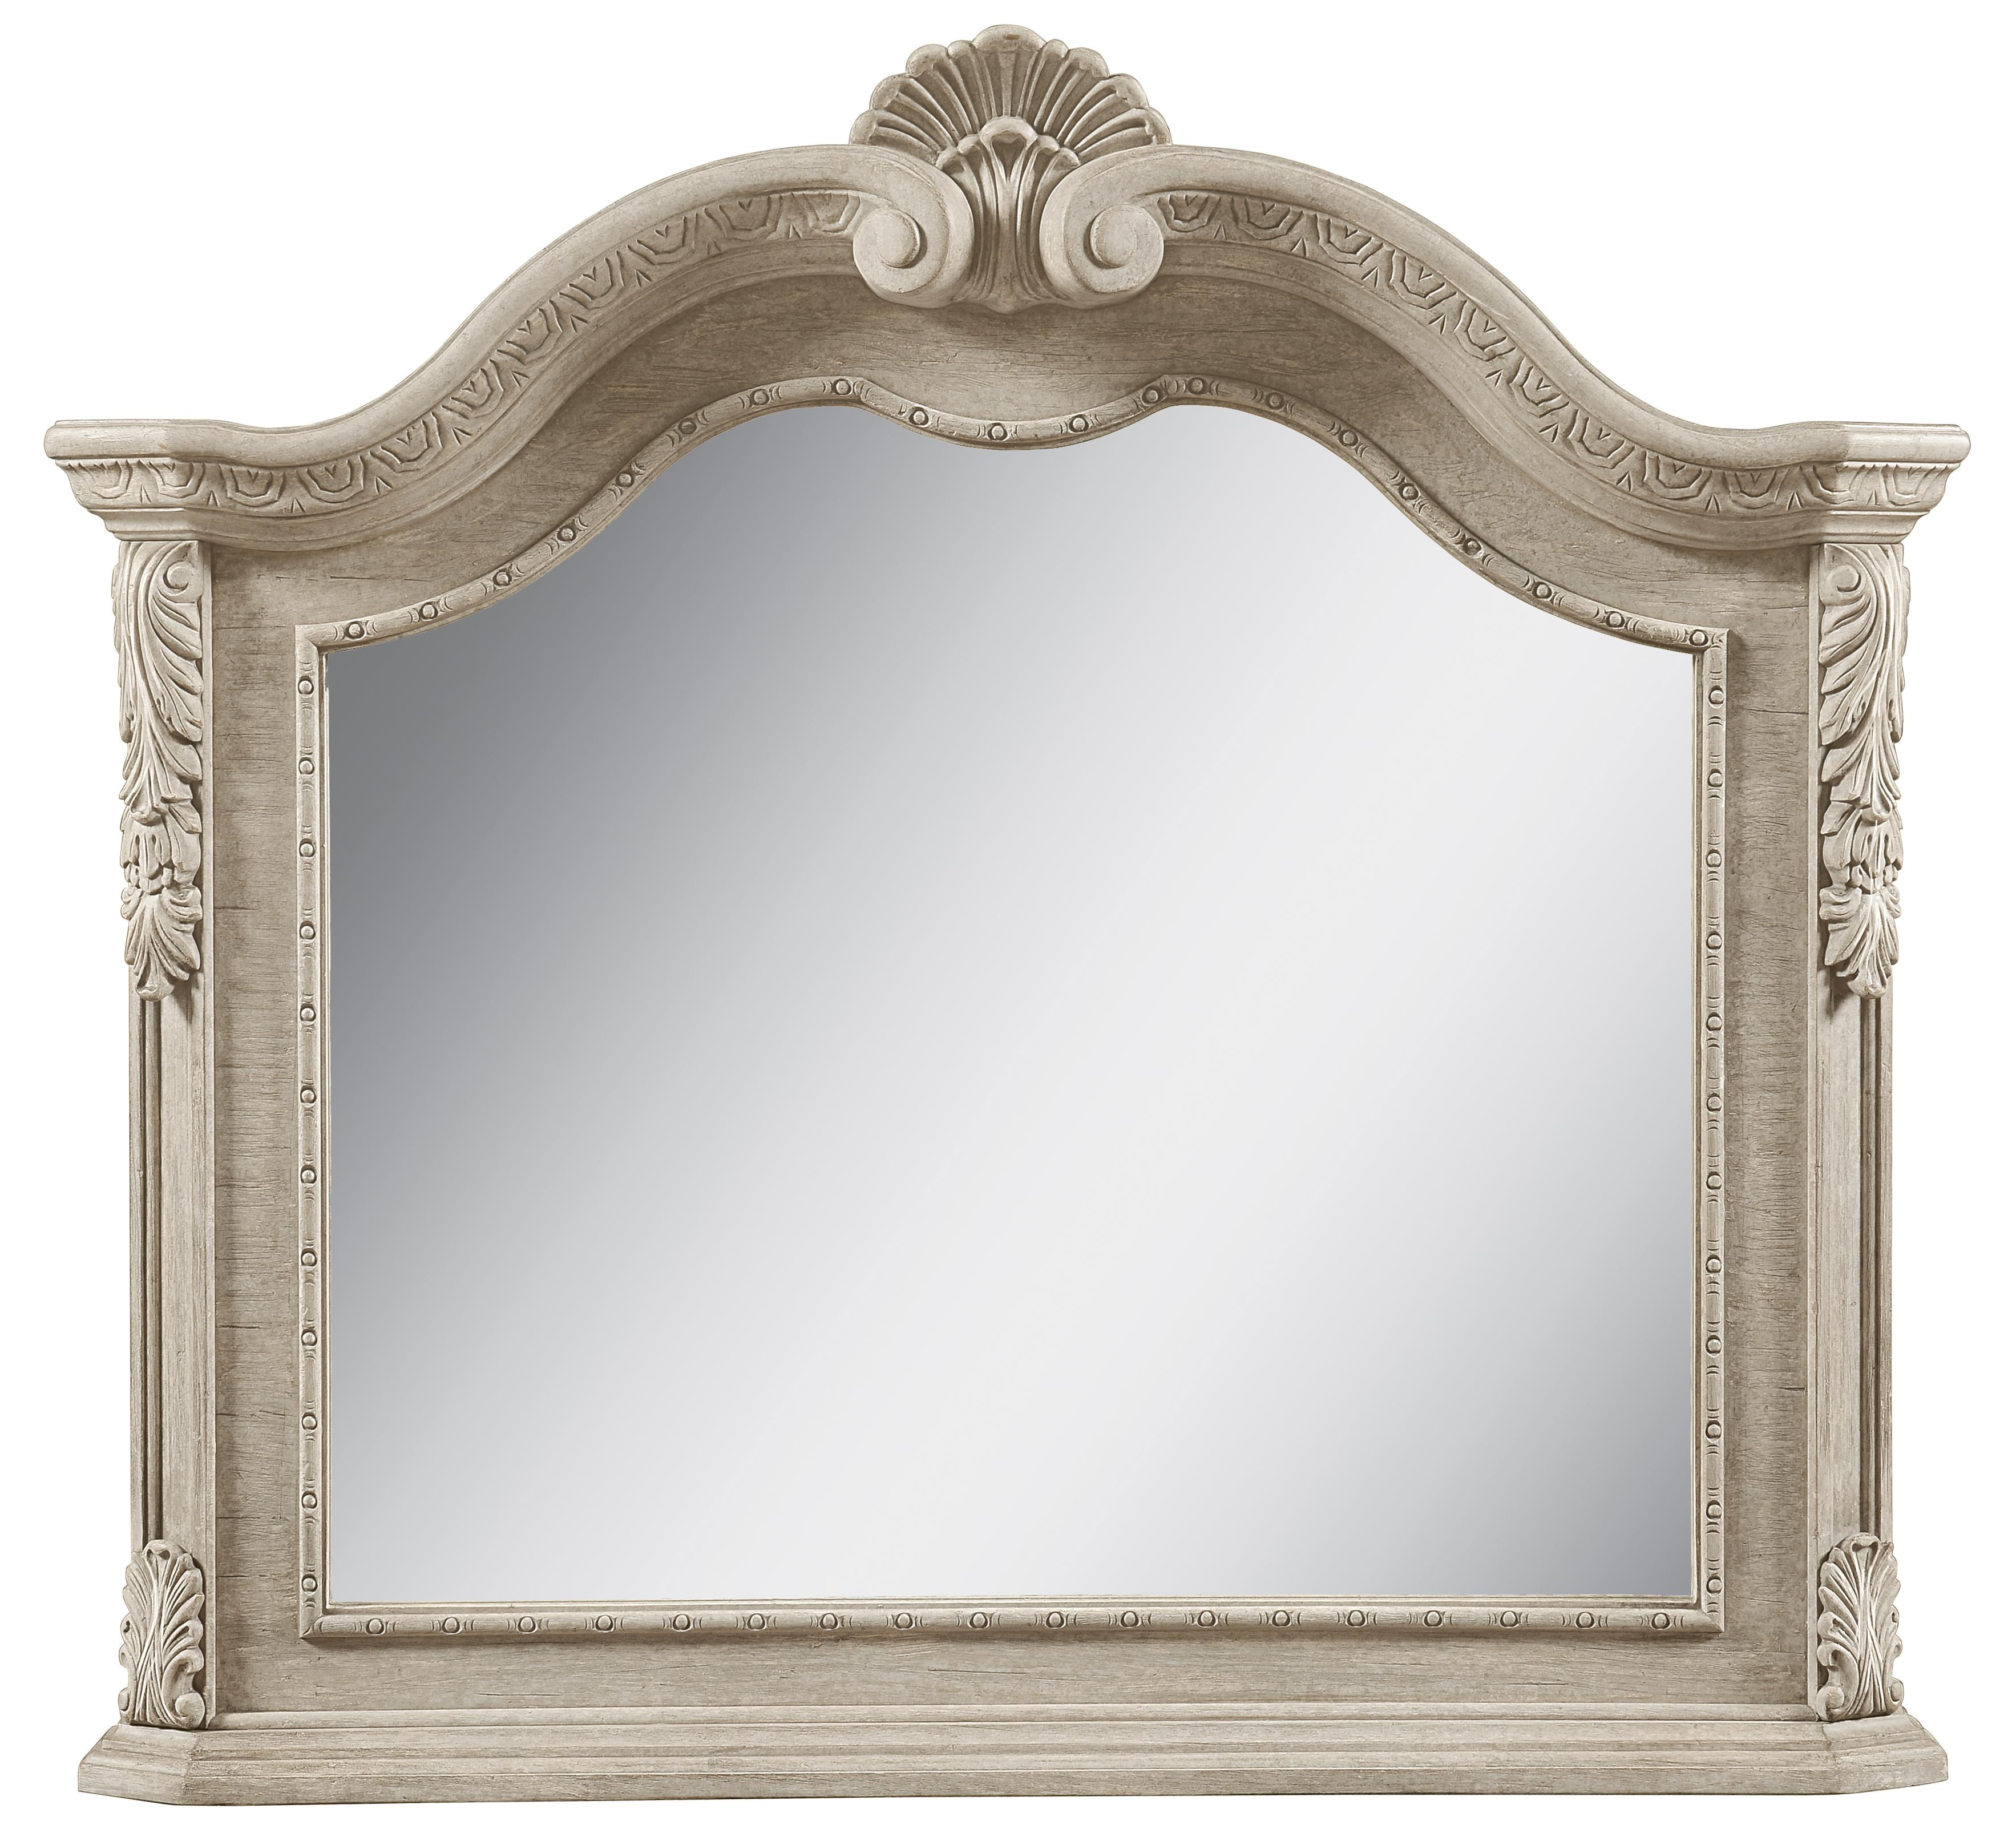 A.R.T. Furniture Inc Renaissance Landscape Mirror - Item Number: 243121-2617